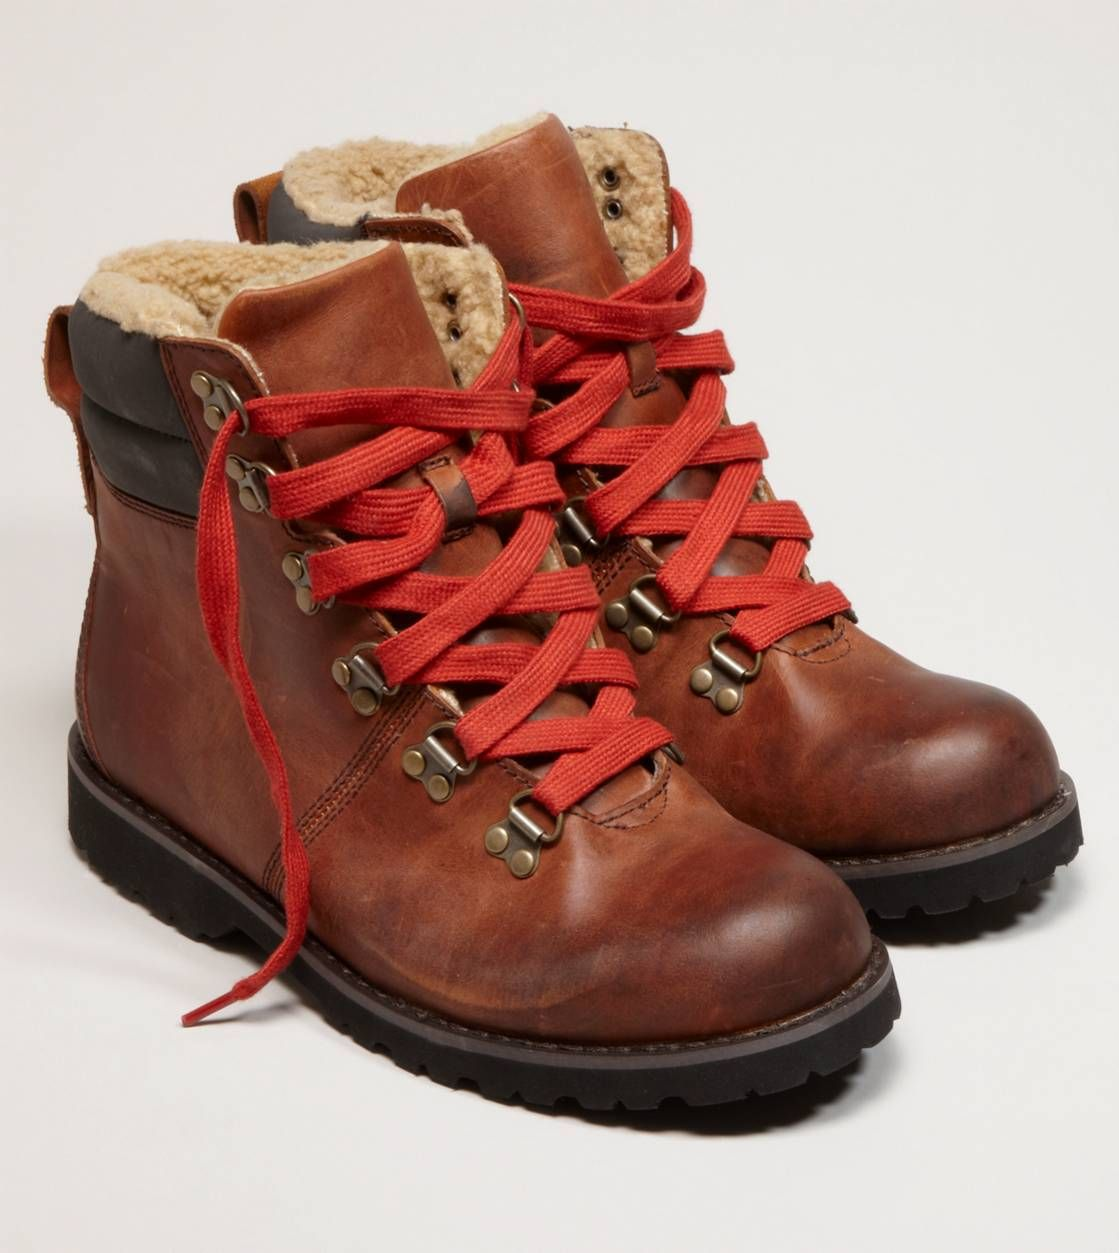 American Eagle Outfitters Men's & Women's Clothing, Shoes & Accessories.  Winter Hiking BootsMens ...